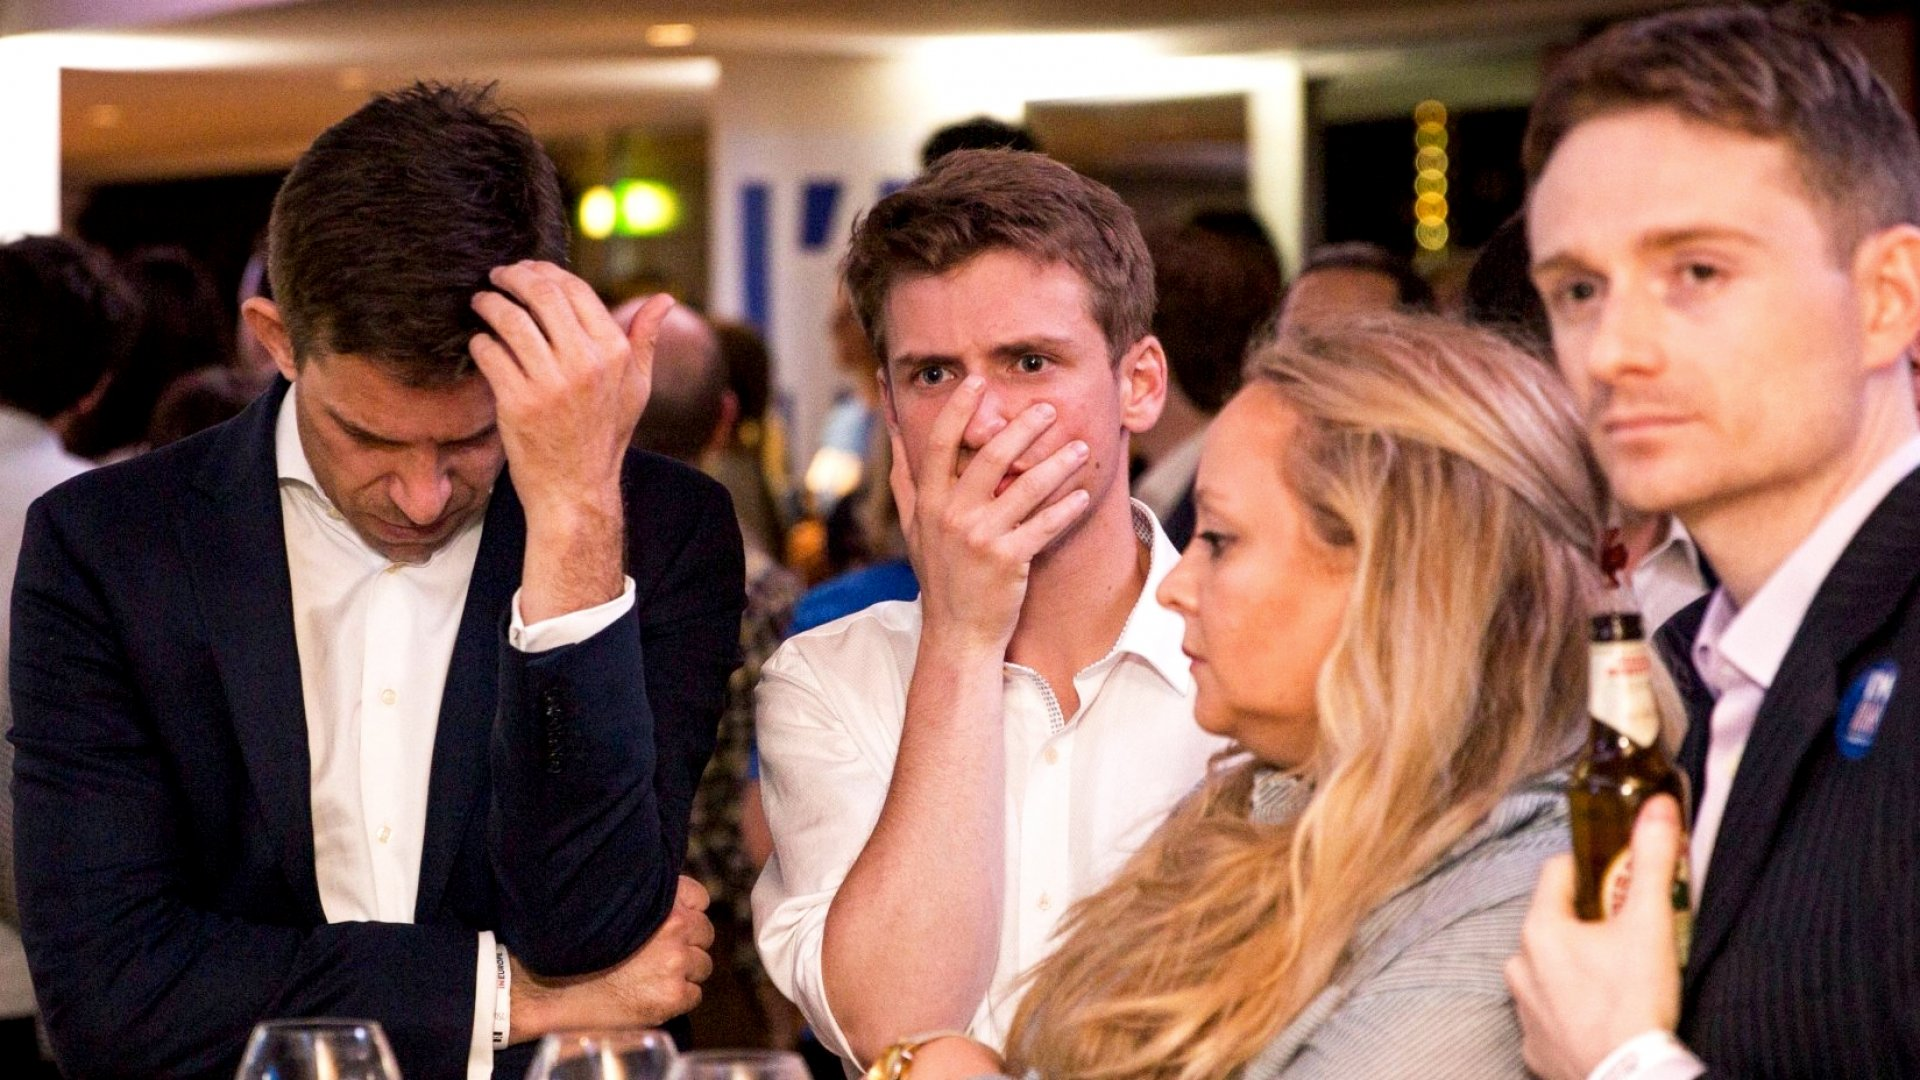 Supporters of the 'Stronger In' campaign react to results of the vote.